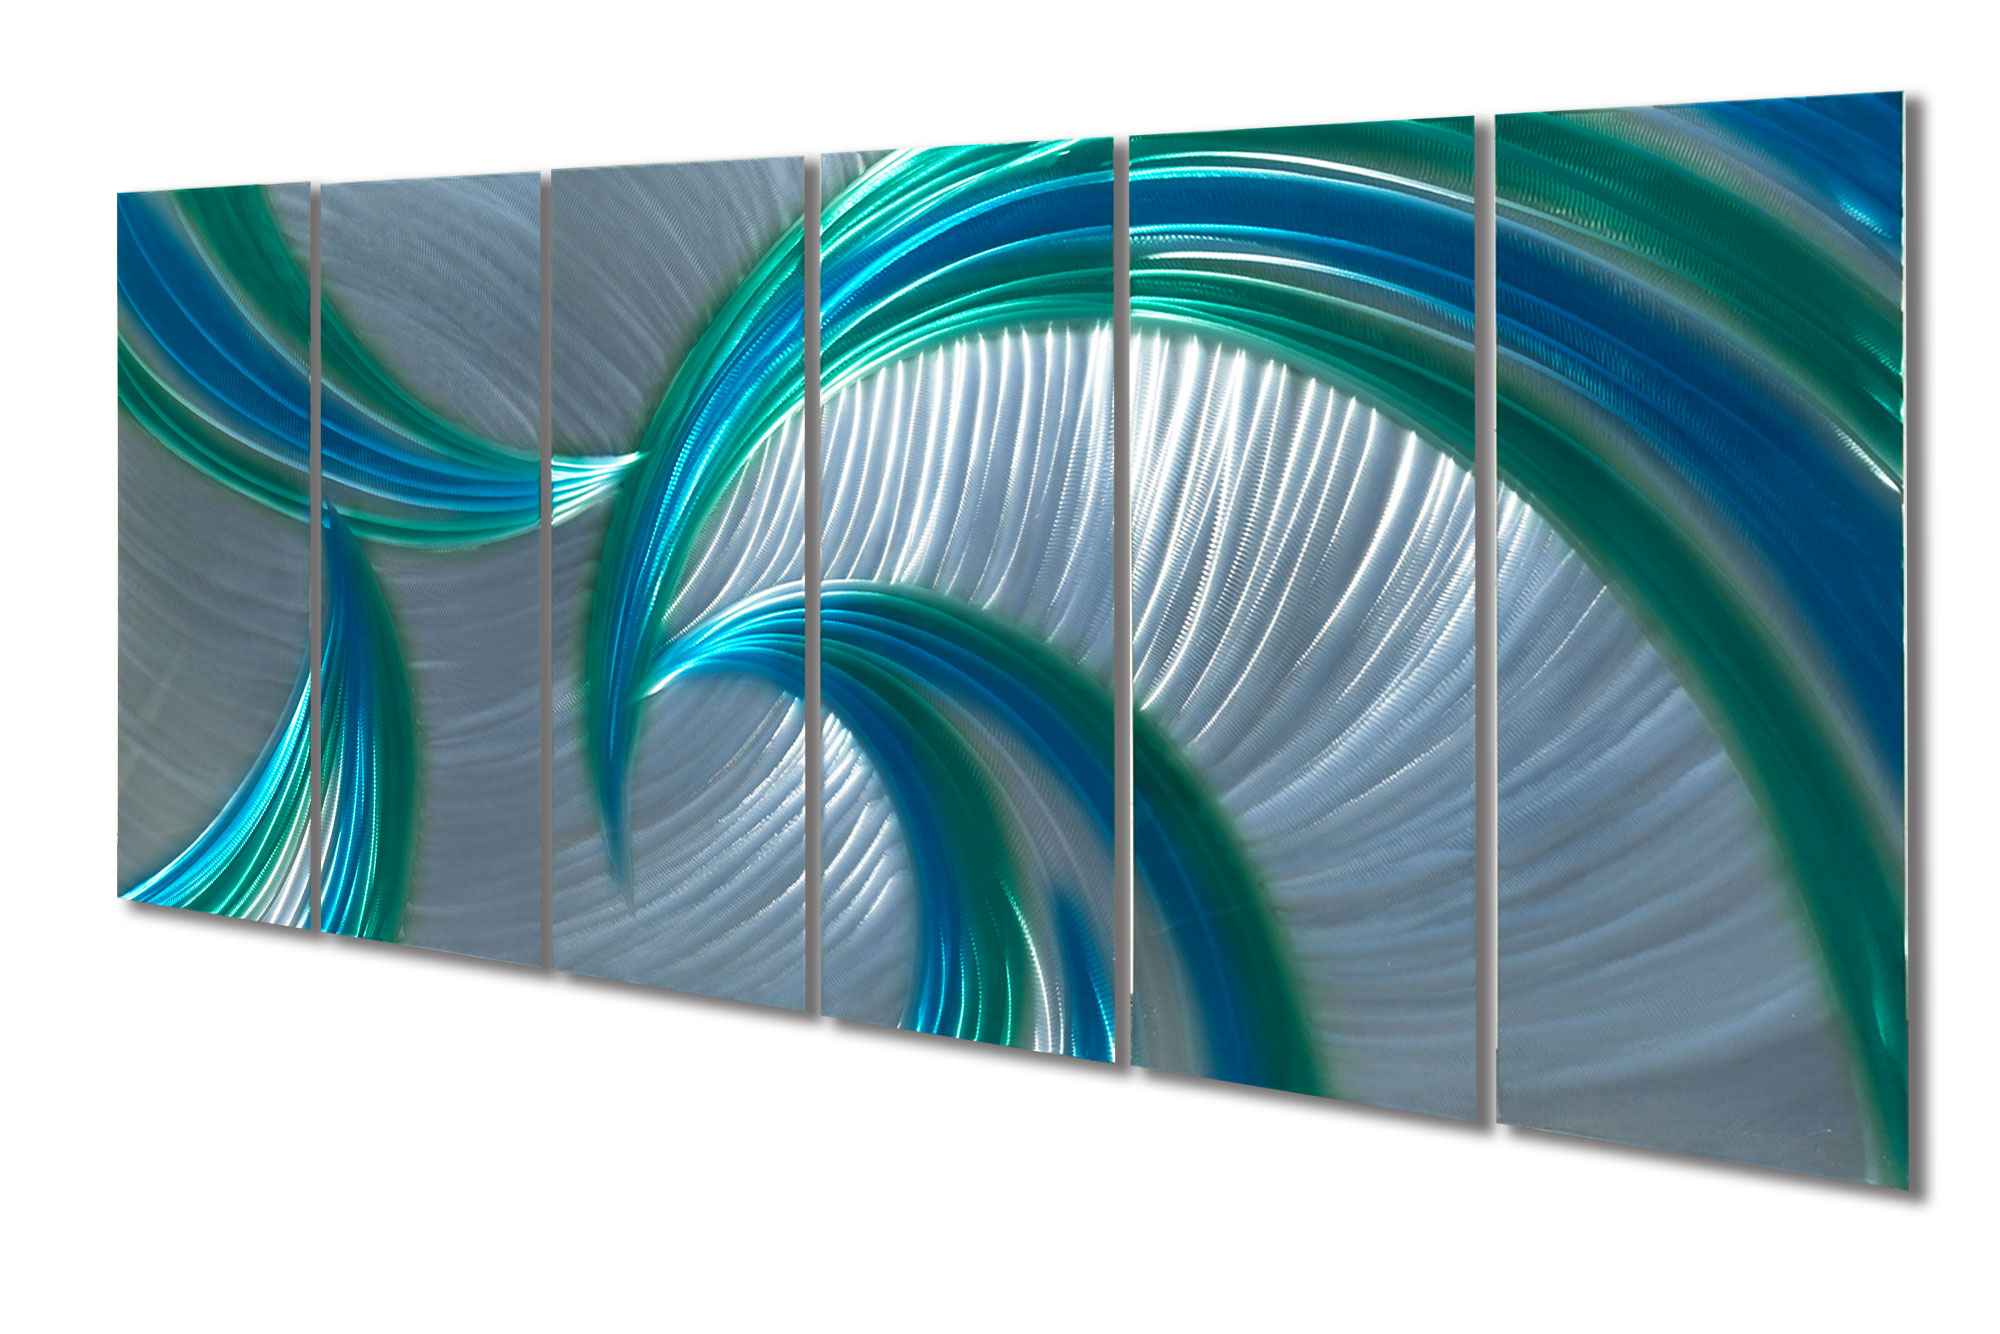 Blue Metal Wall Art Gorgeous Tempest Blue Green 48X125  Metal Wall Art Abstract Sculpture Design Ideas